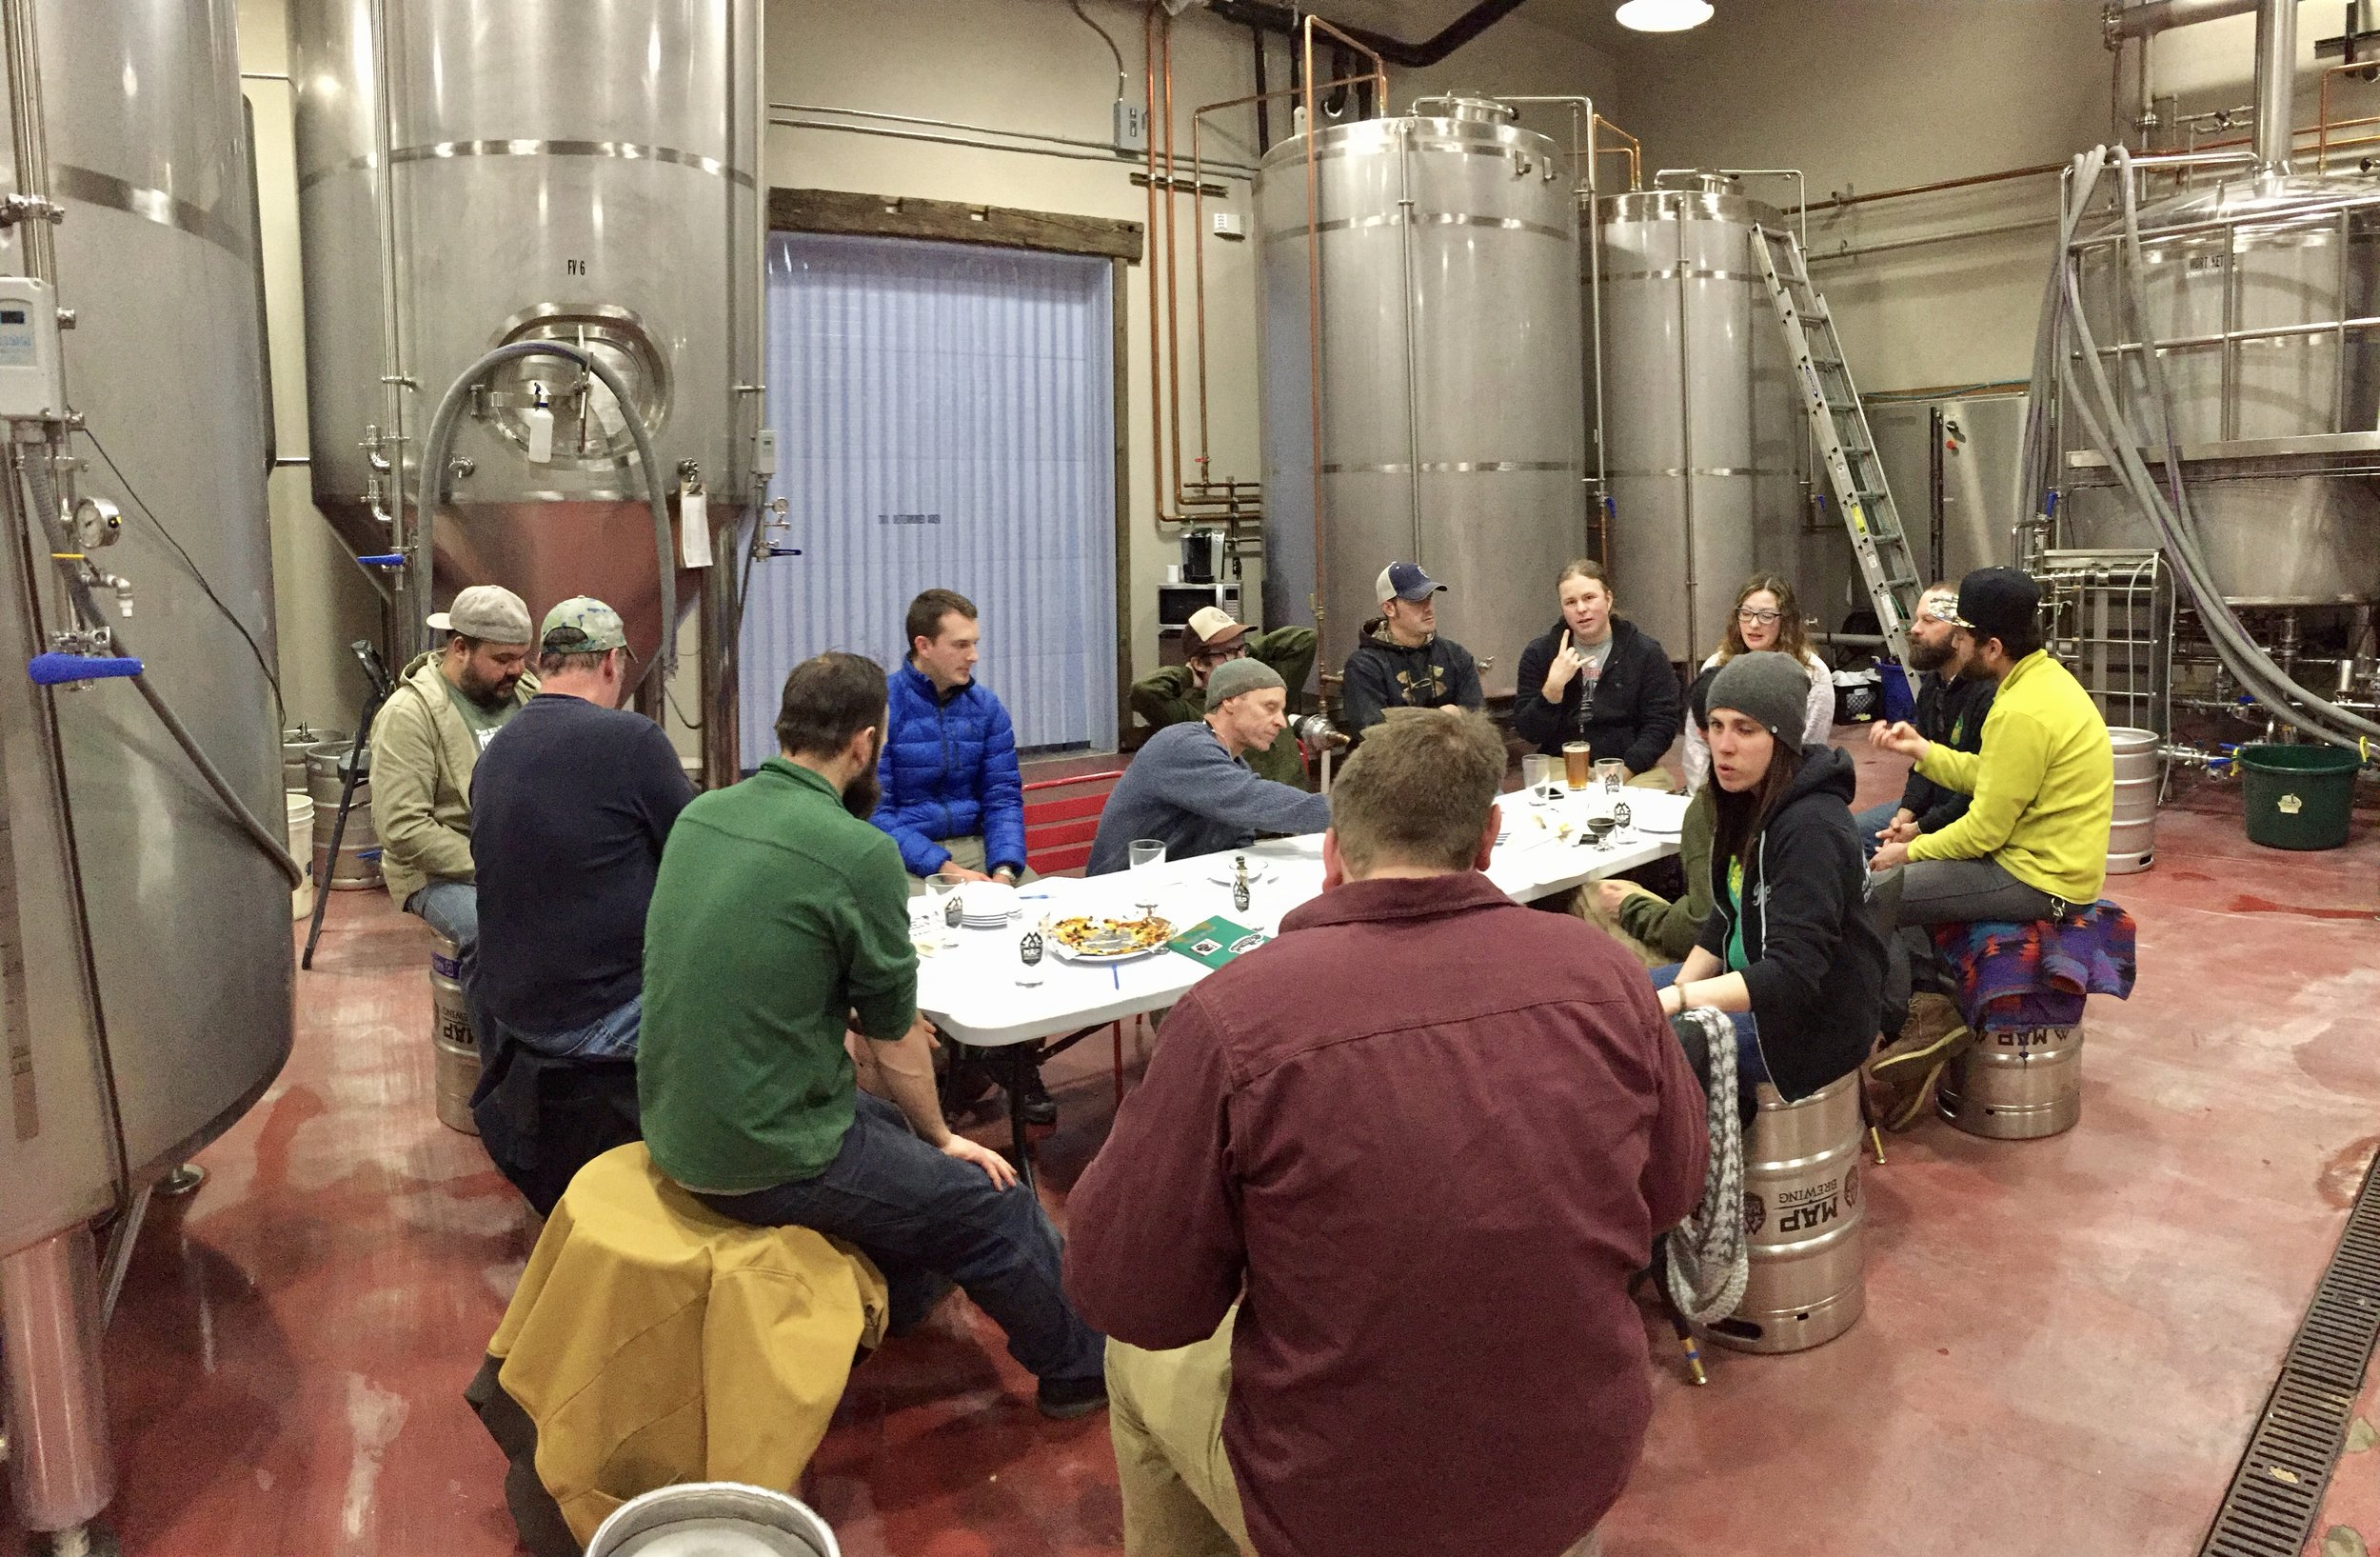 Representatives from every brewery in Bozeman and Belgrade gathered at MAP Brewing to plan their collaboration beers.